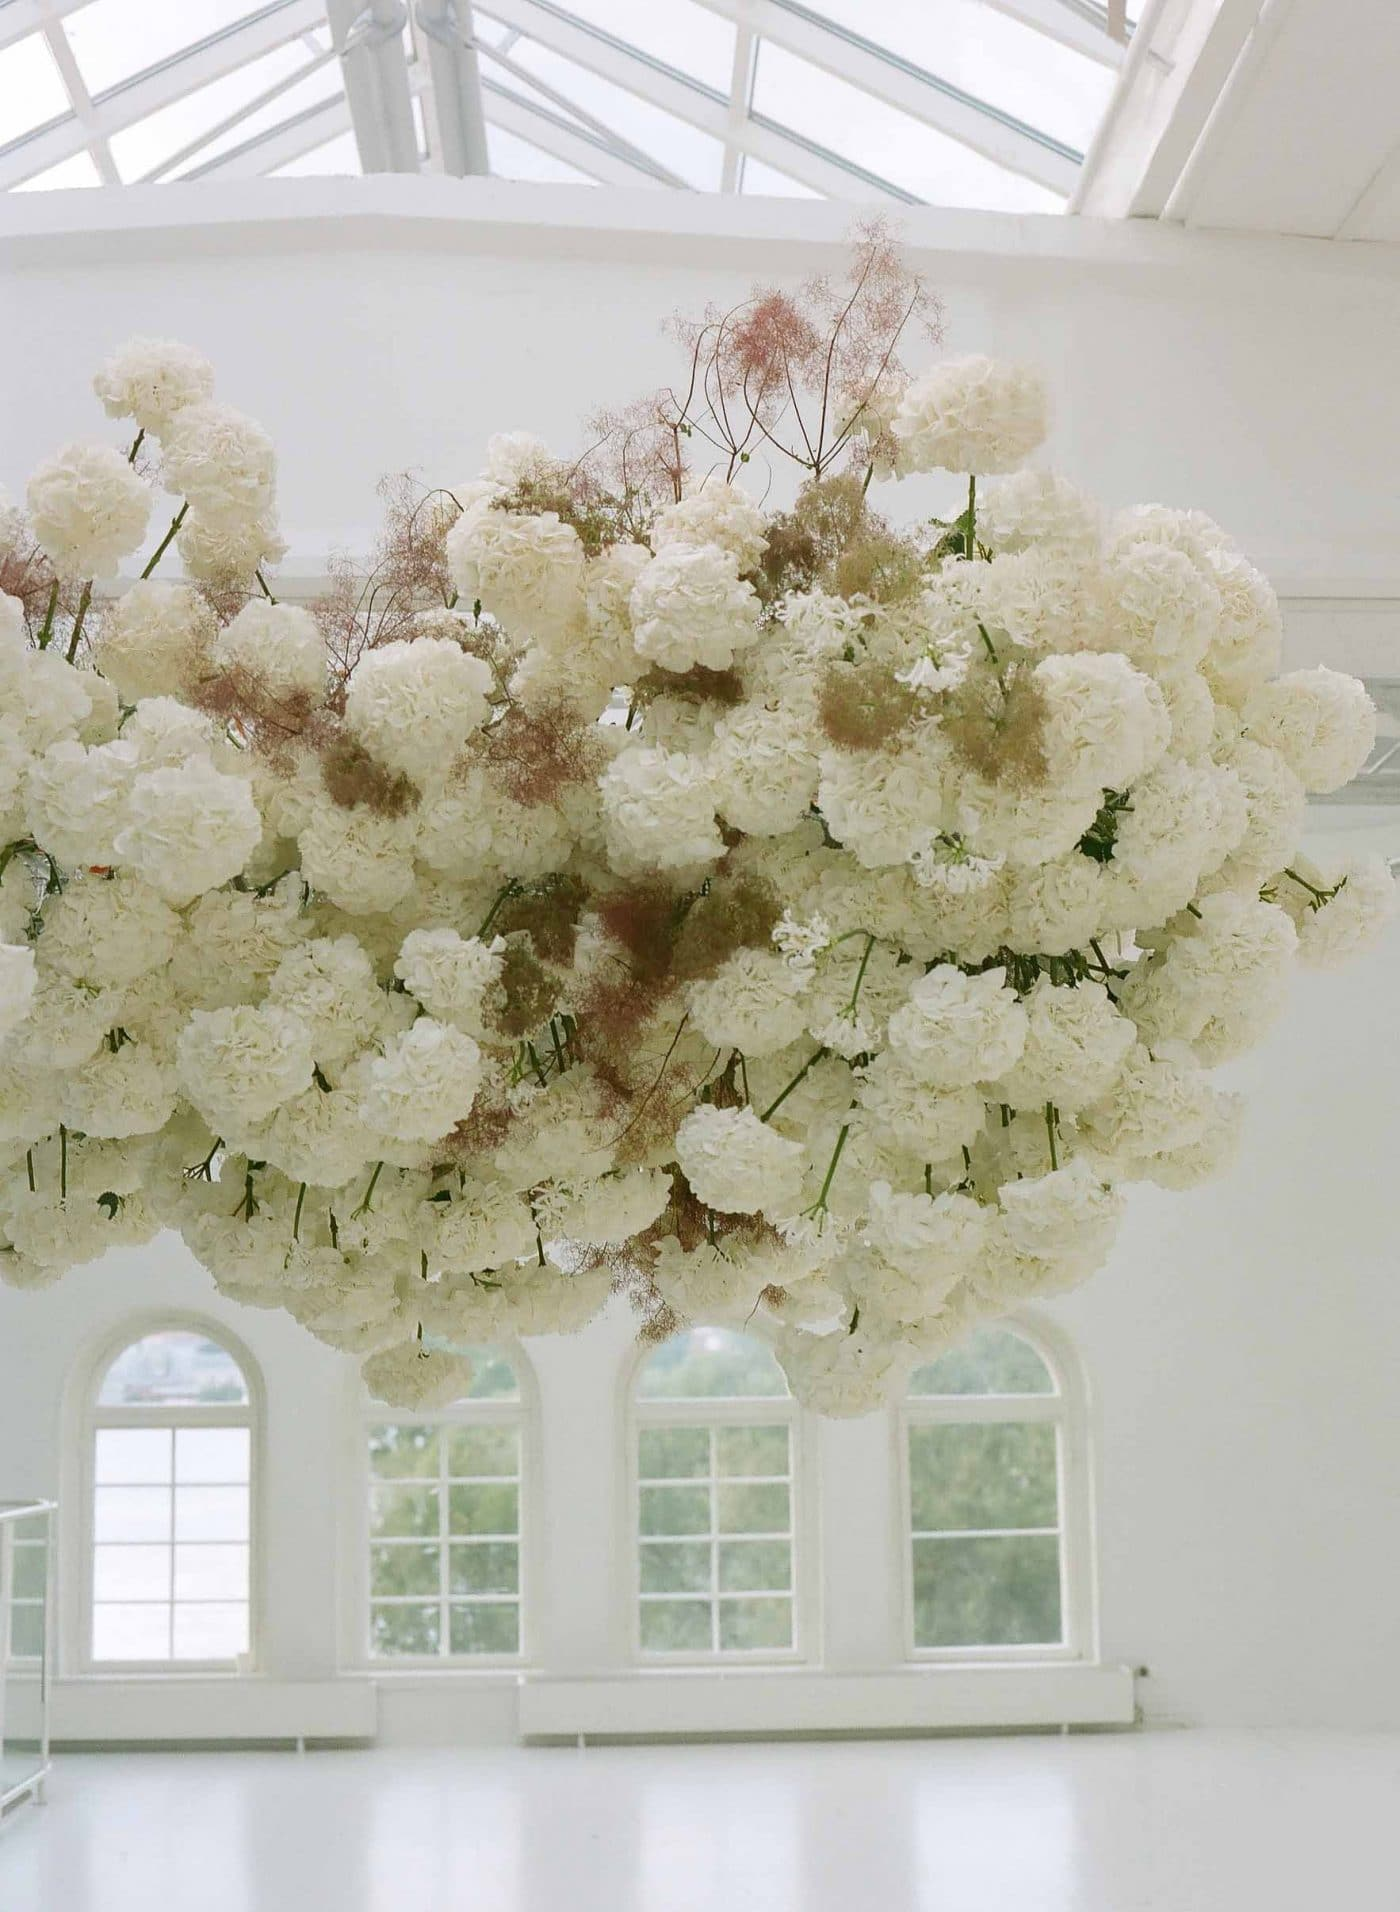 Cloud floral ceiling installation | sarahwinward.com